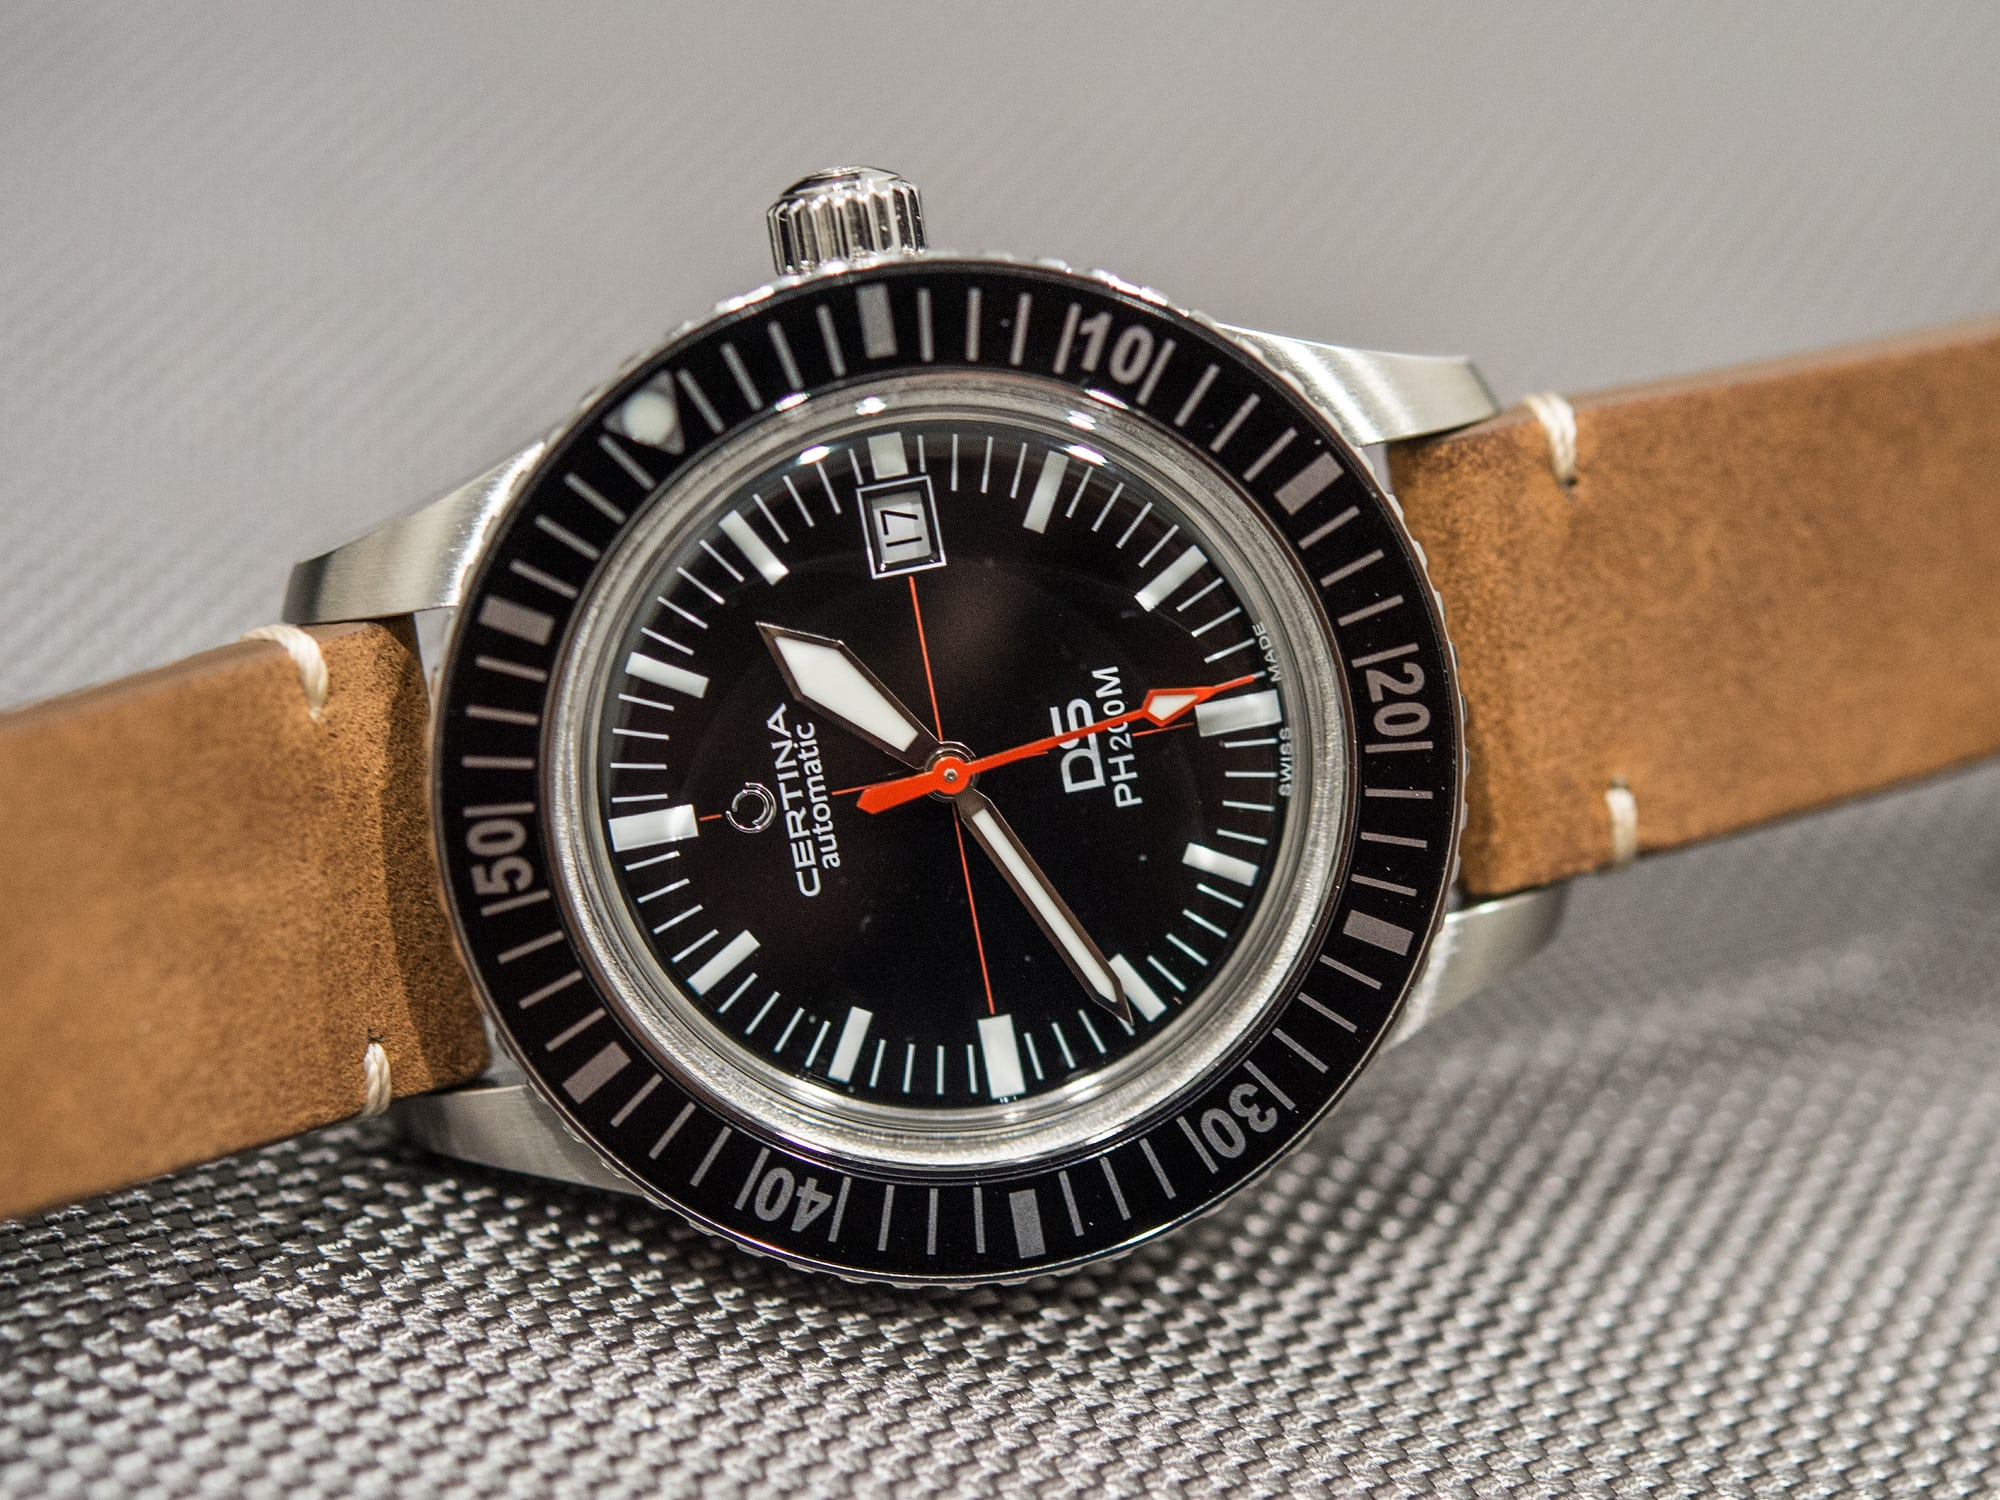 hands-on: the certina ds ph200m Hands-On: The Certina DS PH200M Certina 1